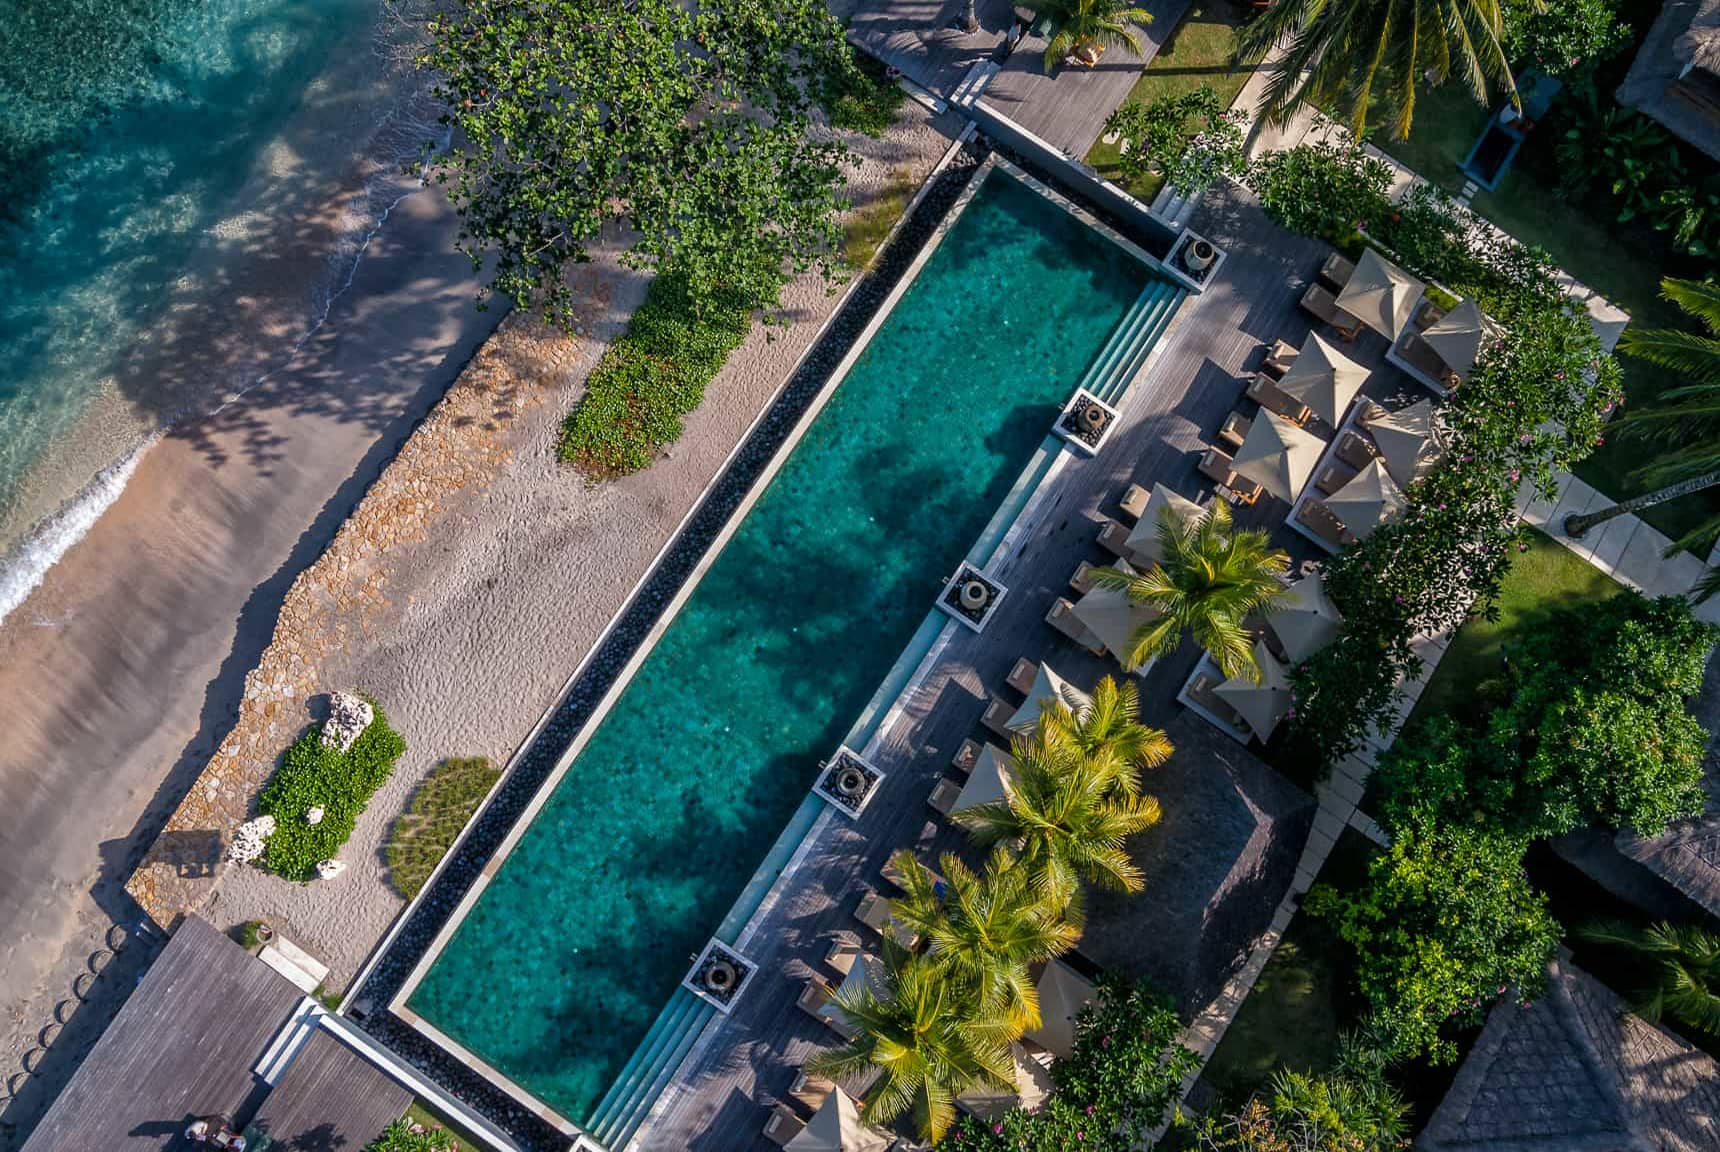 Ocean, pools, gardens, and hotel layout views